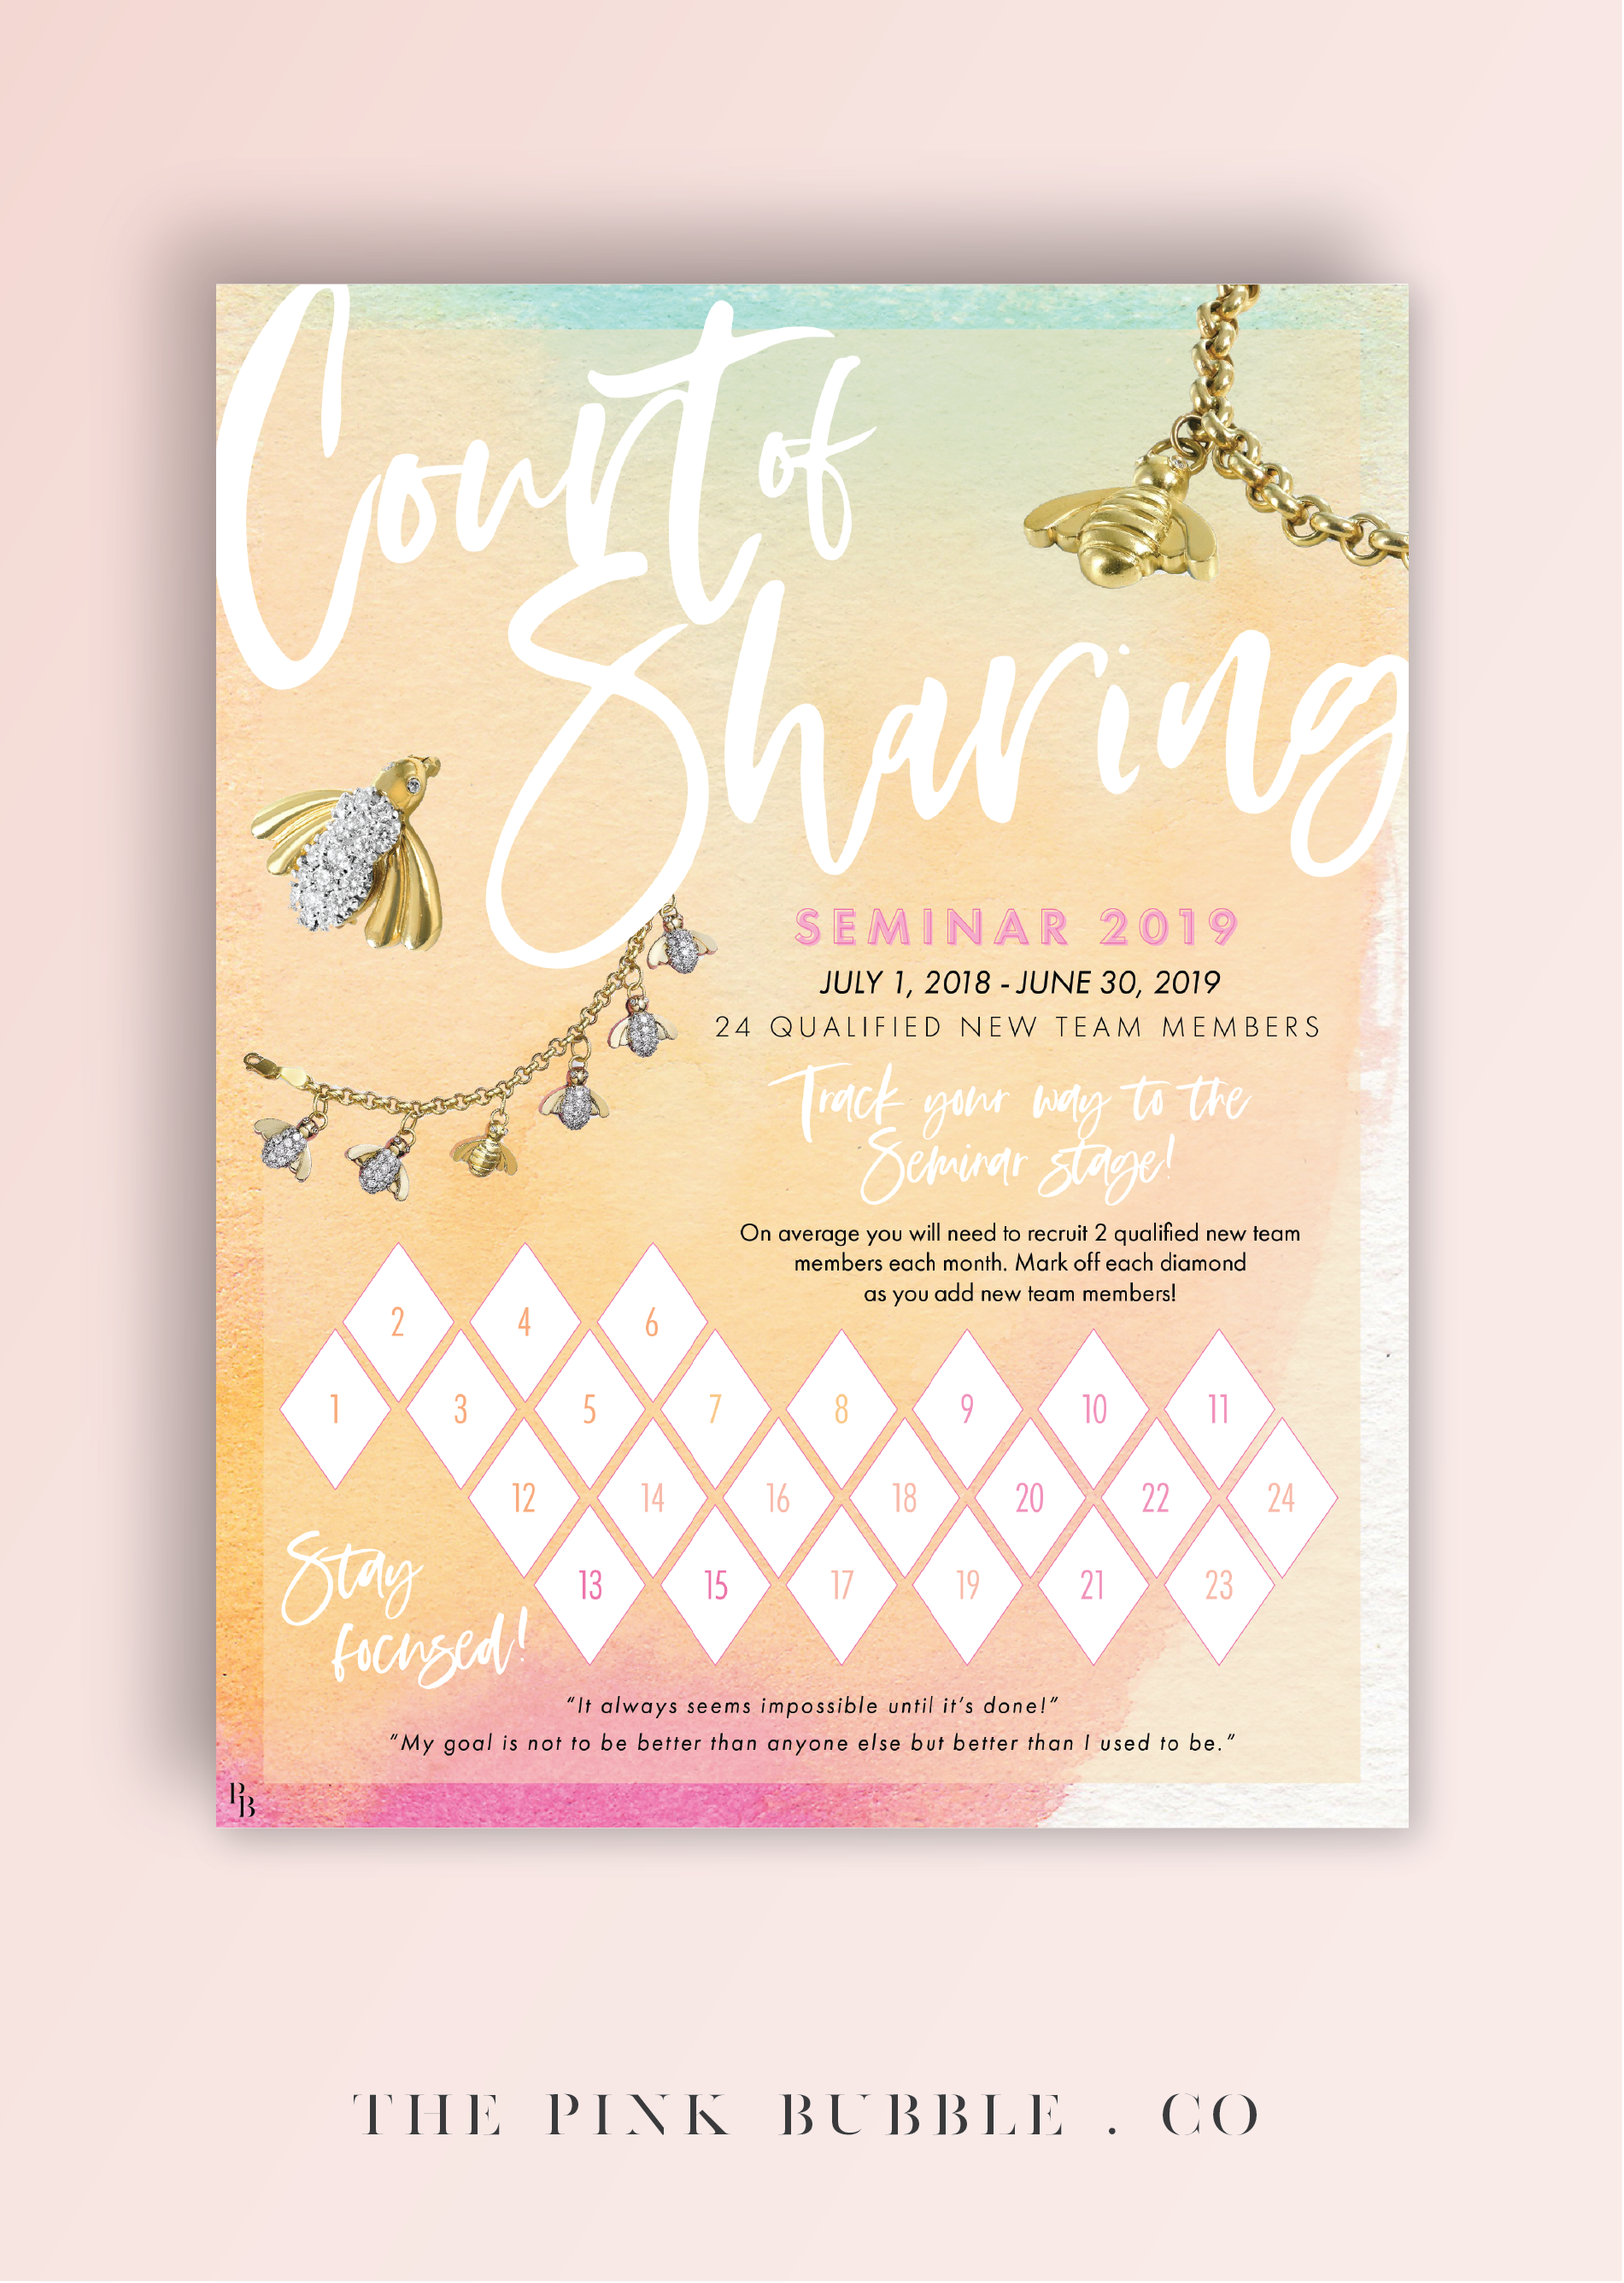 Mary Kay Court of Sharing 2019 Tracking Sheet! Track your